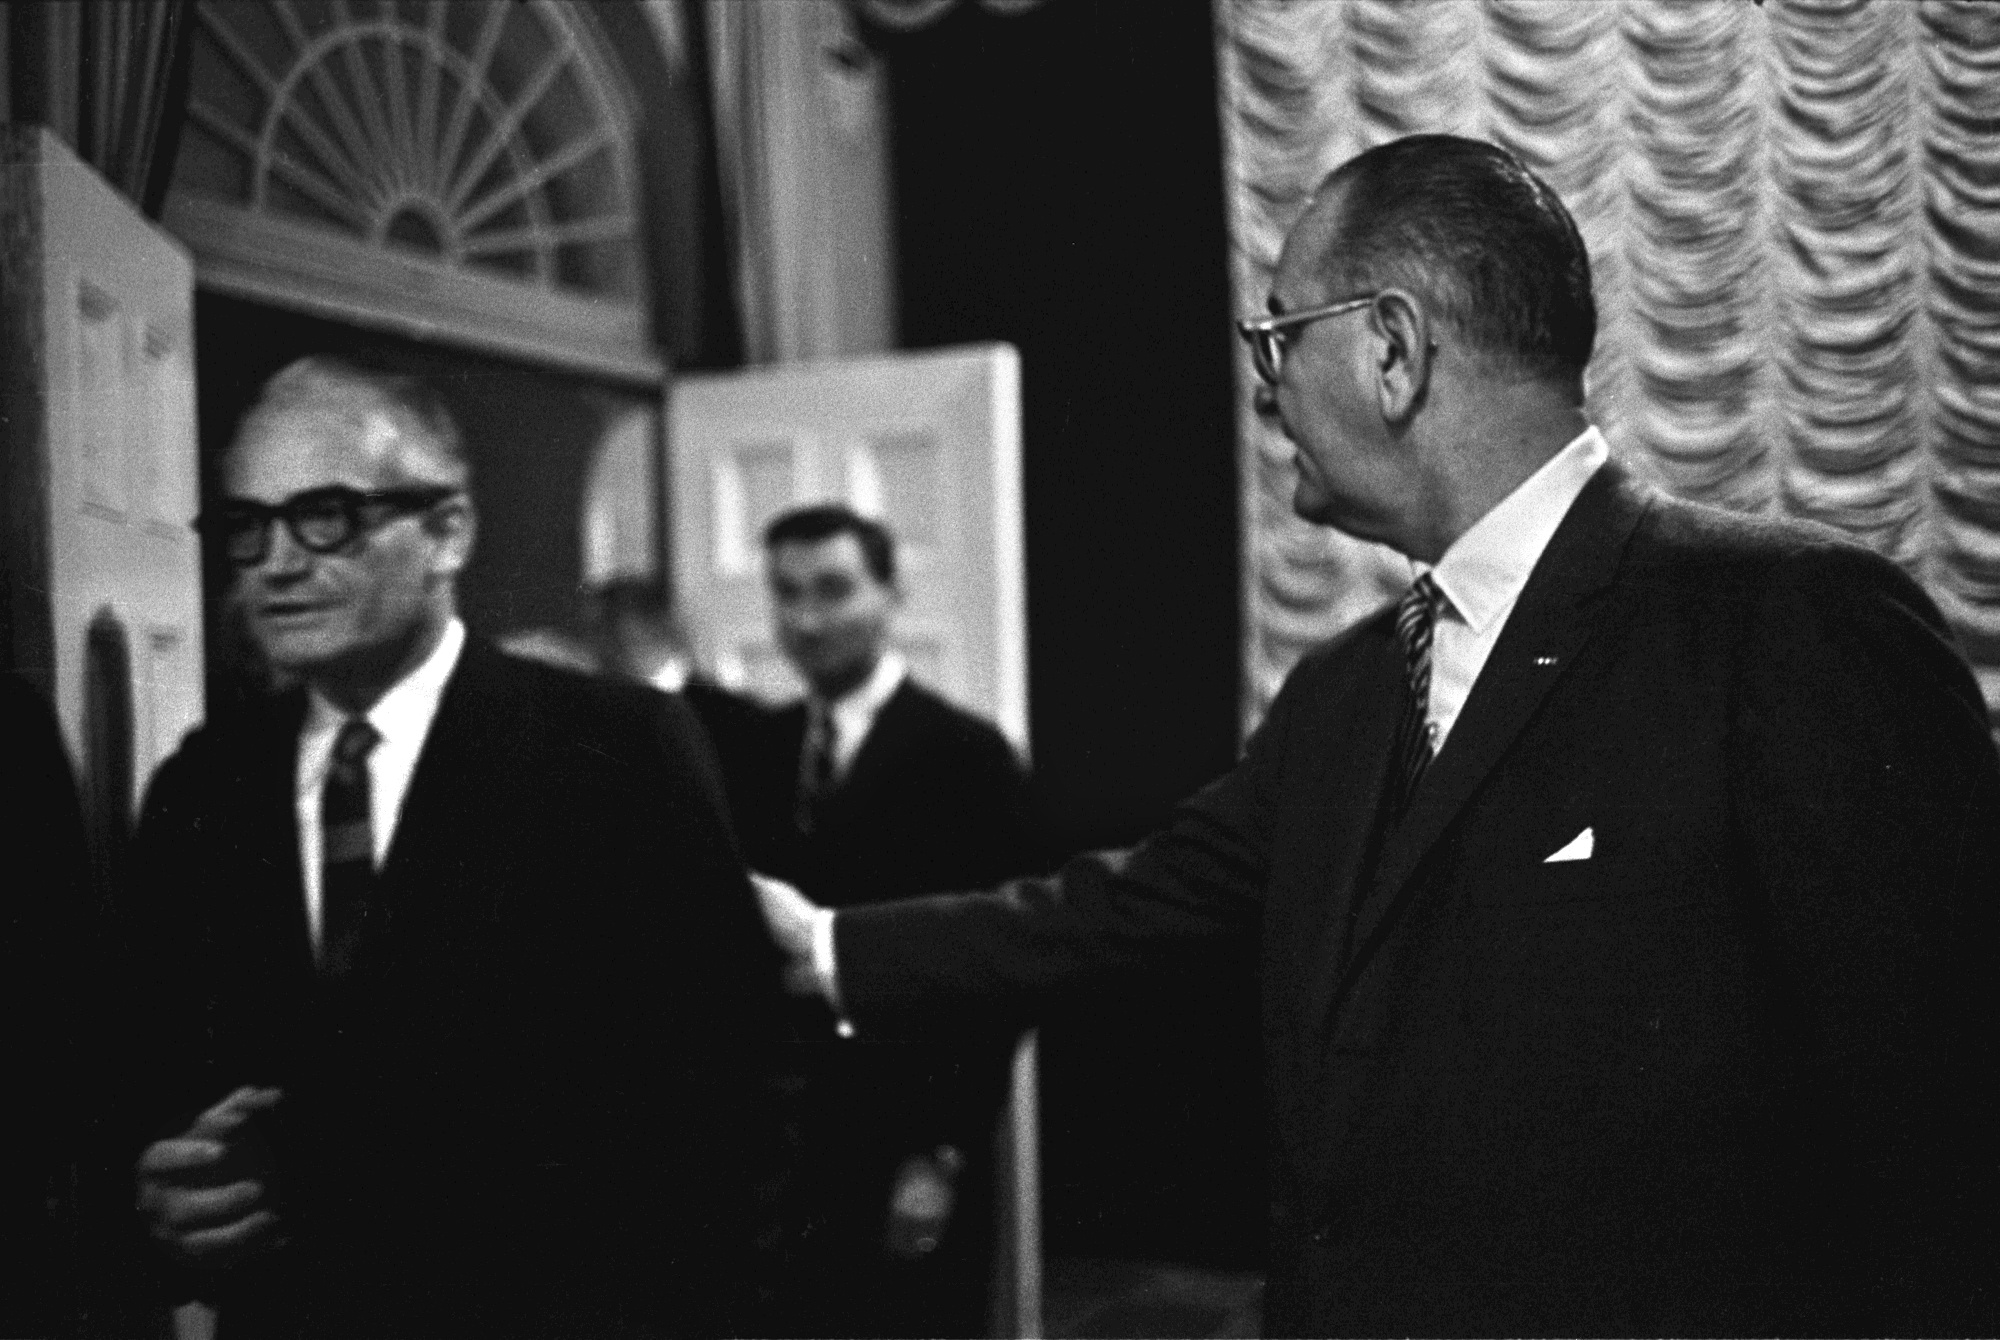 President Johnson and Senator Barry Goldwater